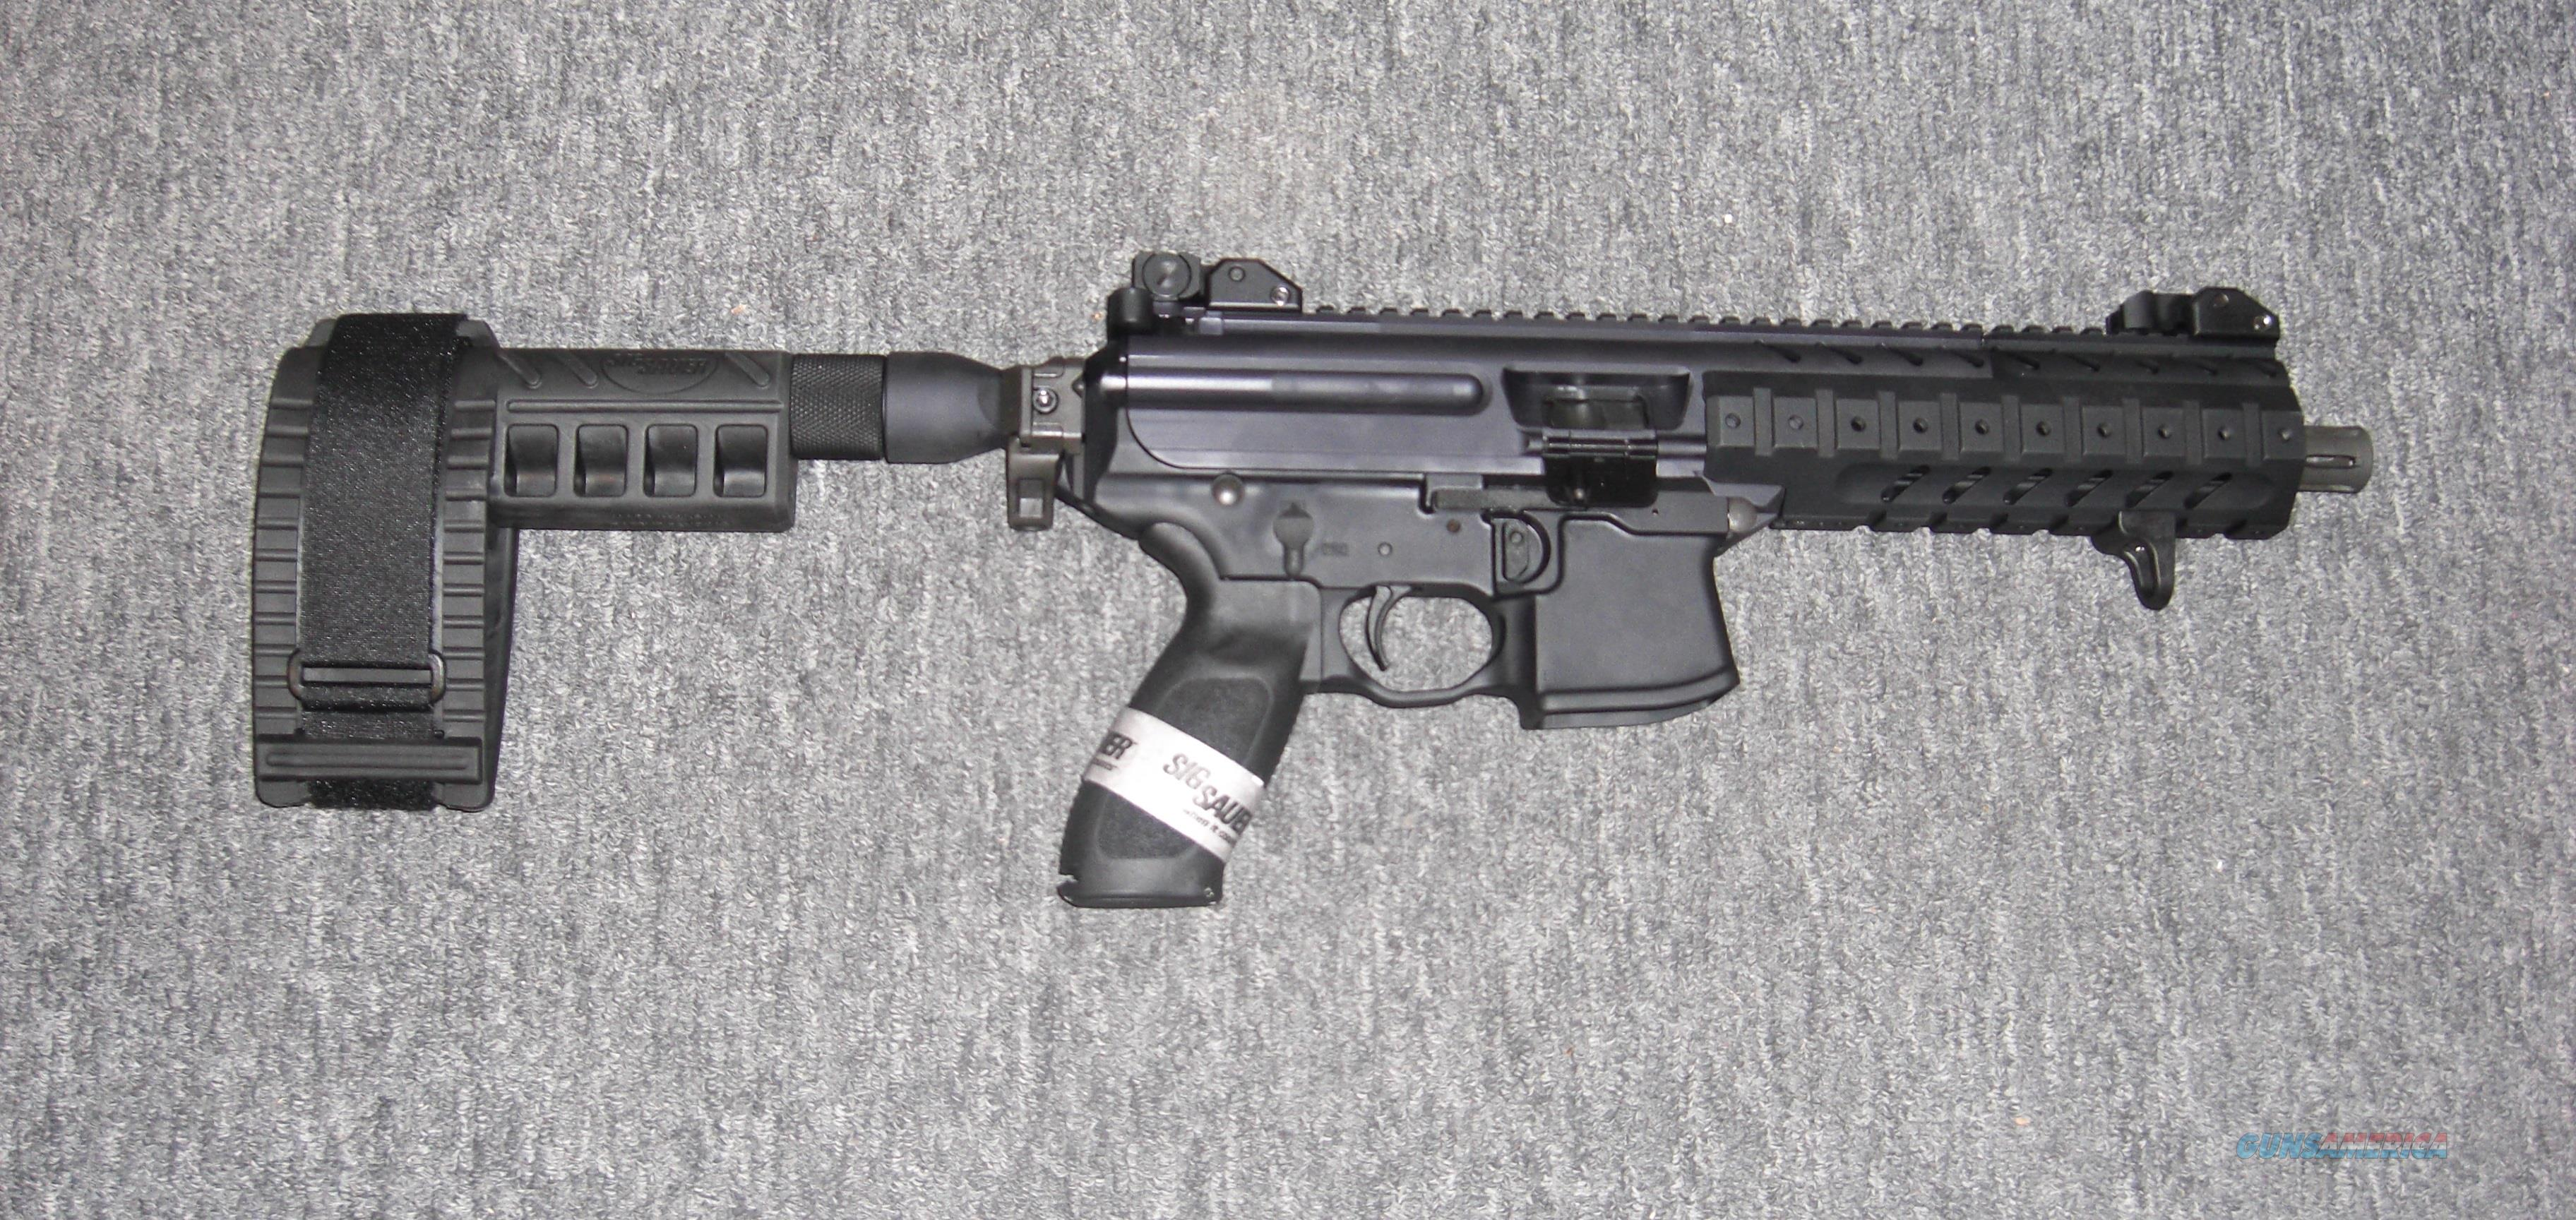 A1 Auto Sales >> Sig Sauer MPX Pistol w/Sig Arm Brace for sale